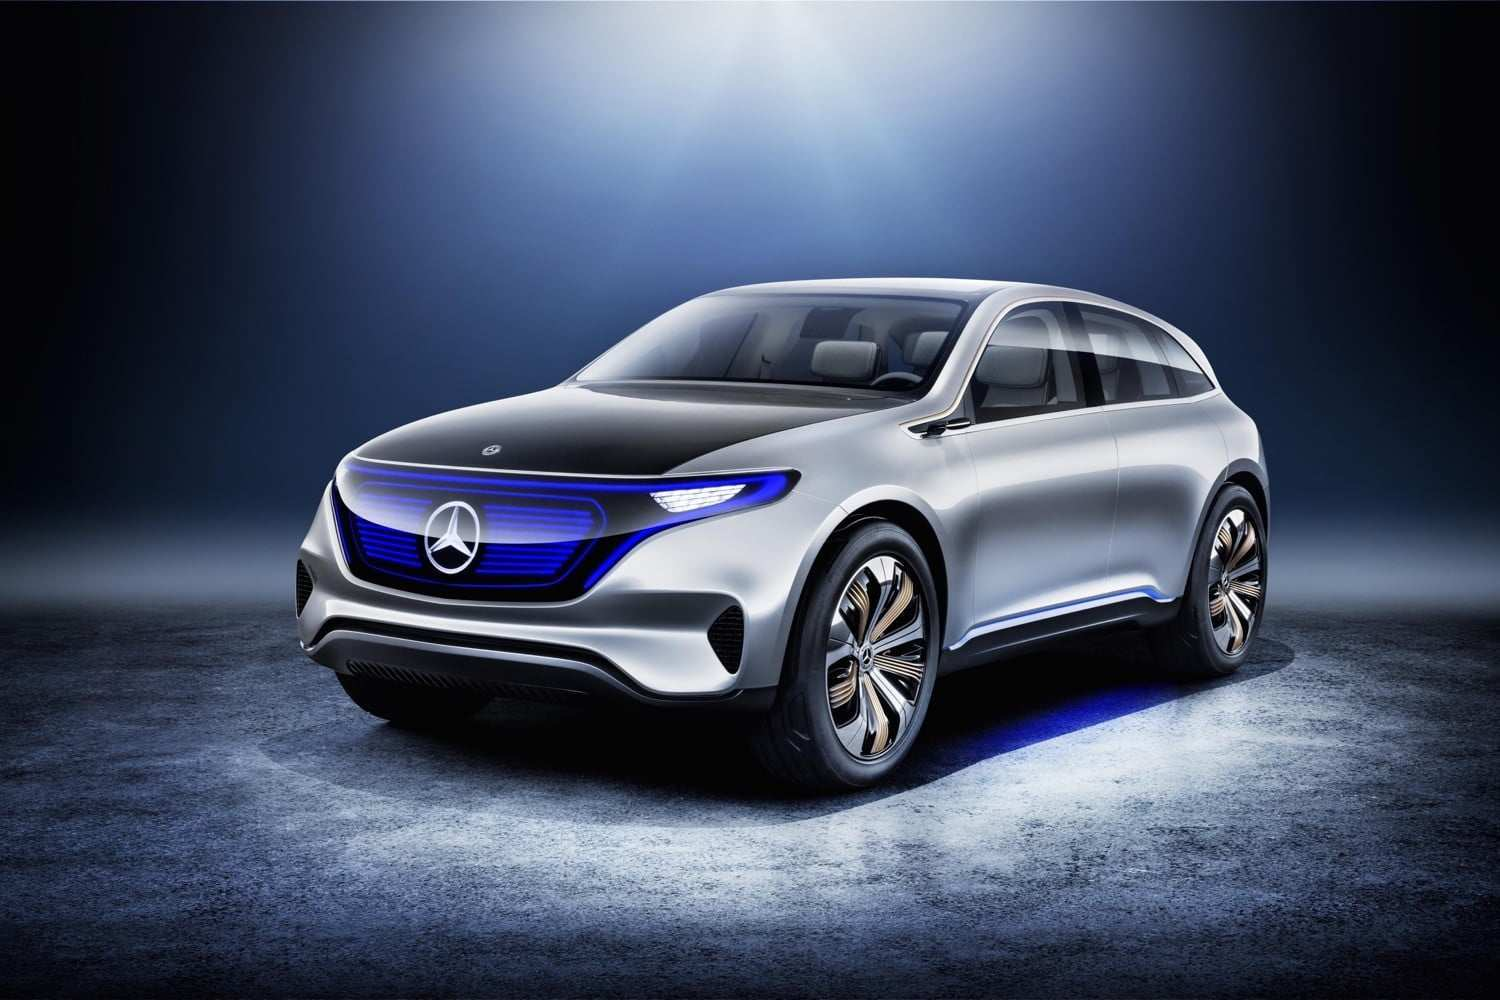 36 Concept of Mercedes 2020 Electric Car Price and Review by Mercedes 2020 Electric Car